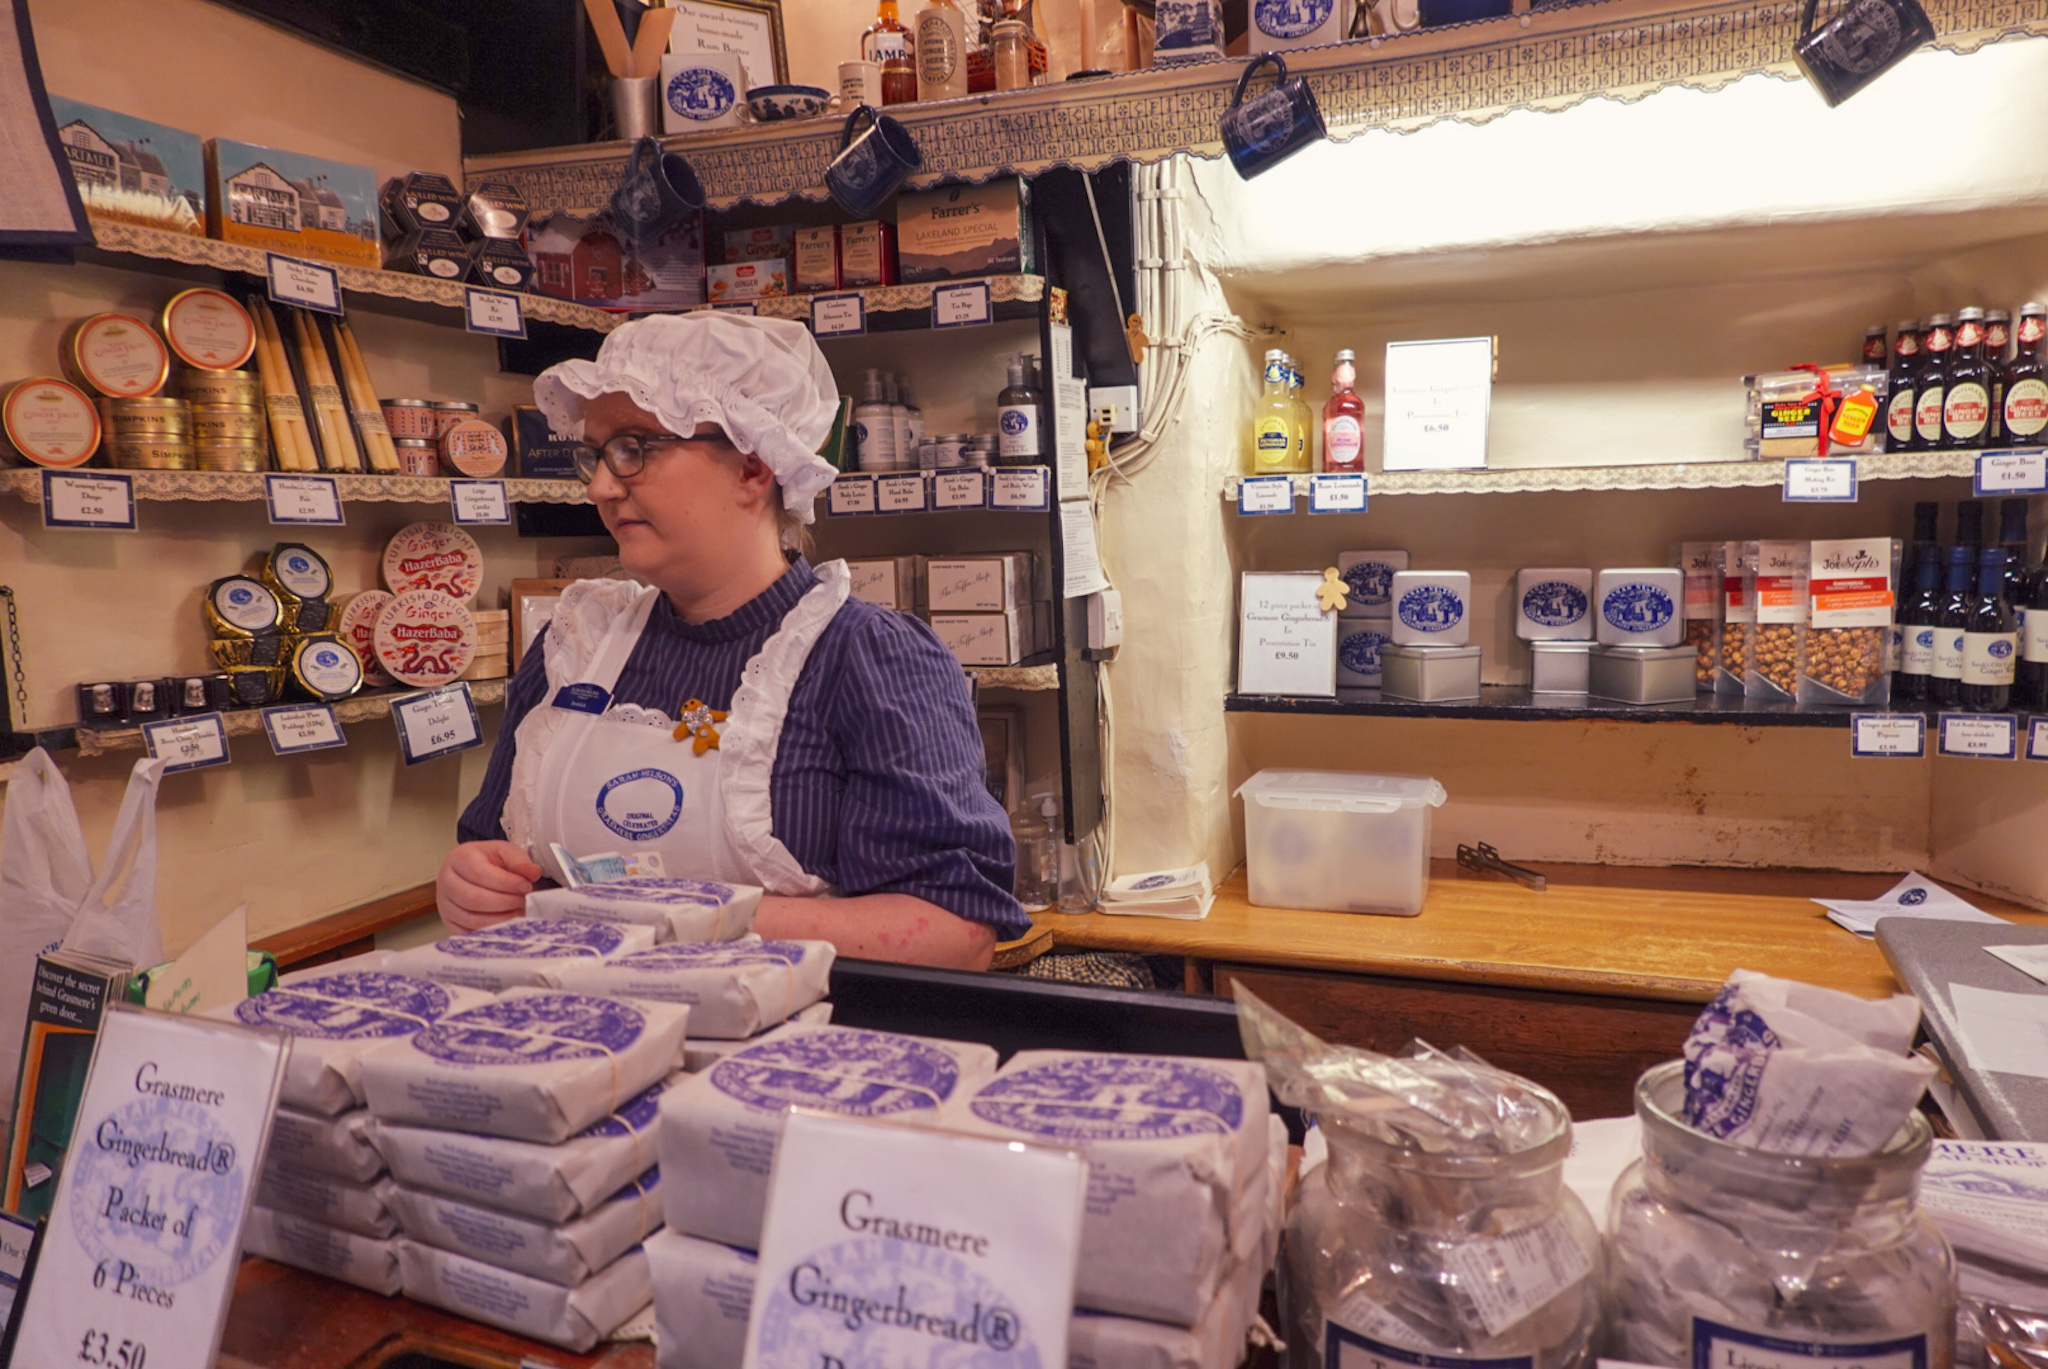 Sarah Nelson's Grasmere Gingerbread shop